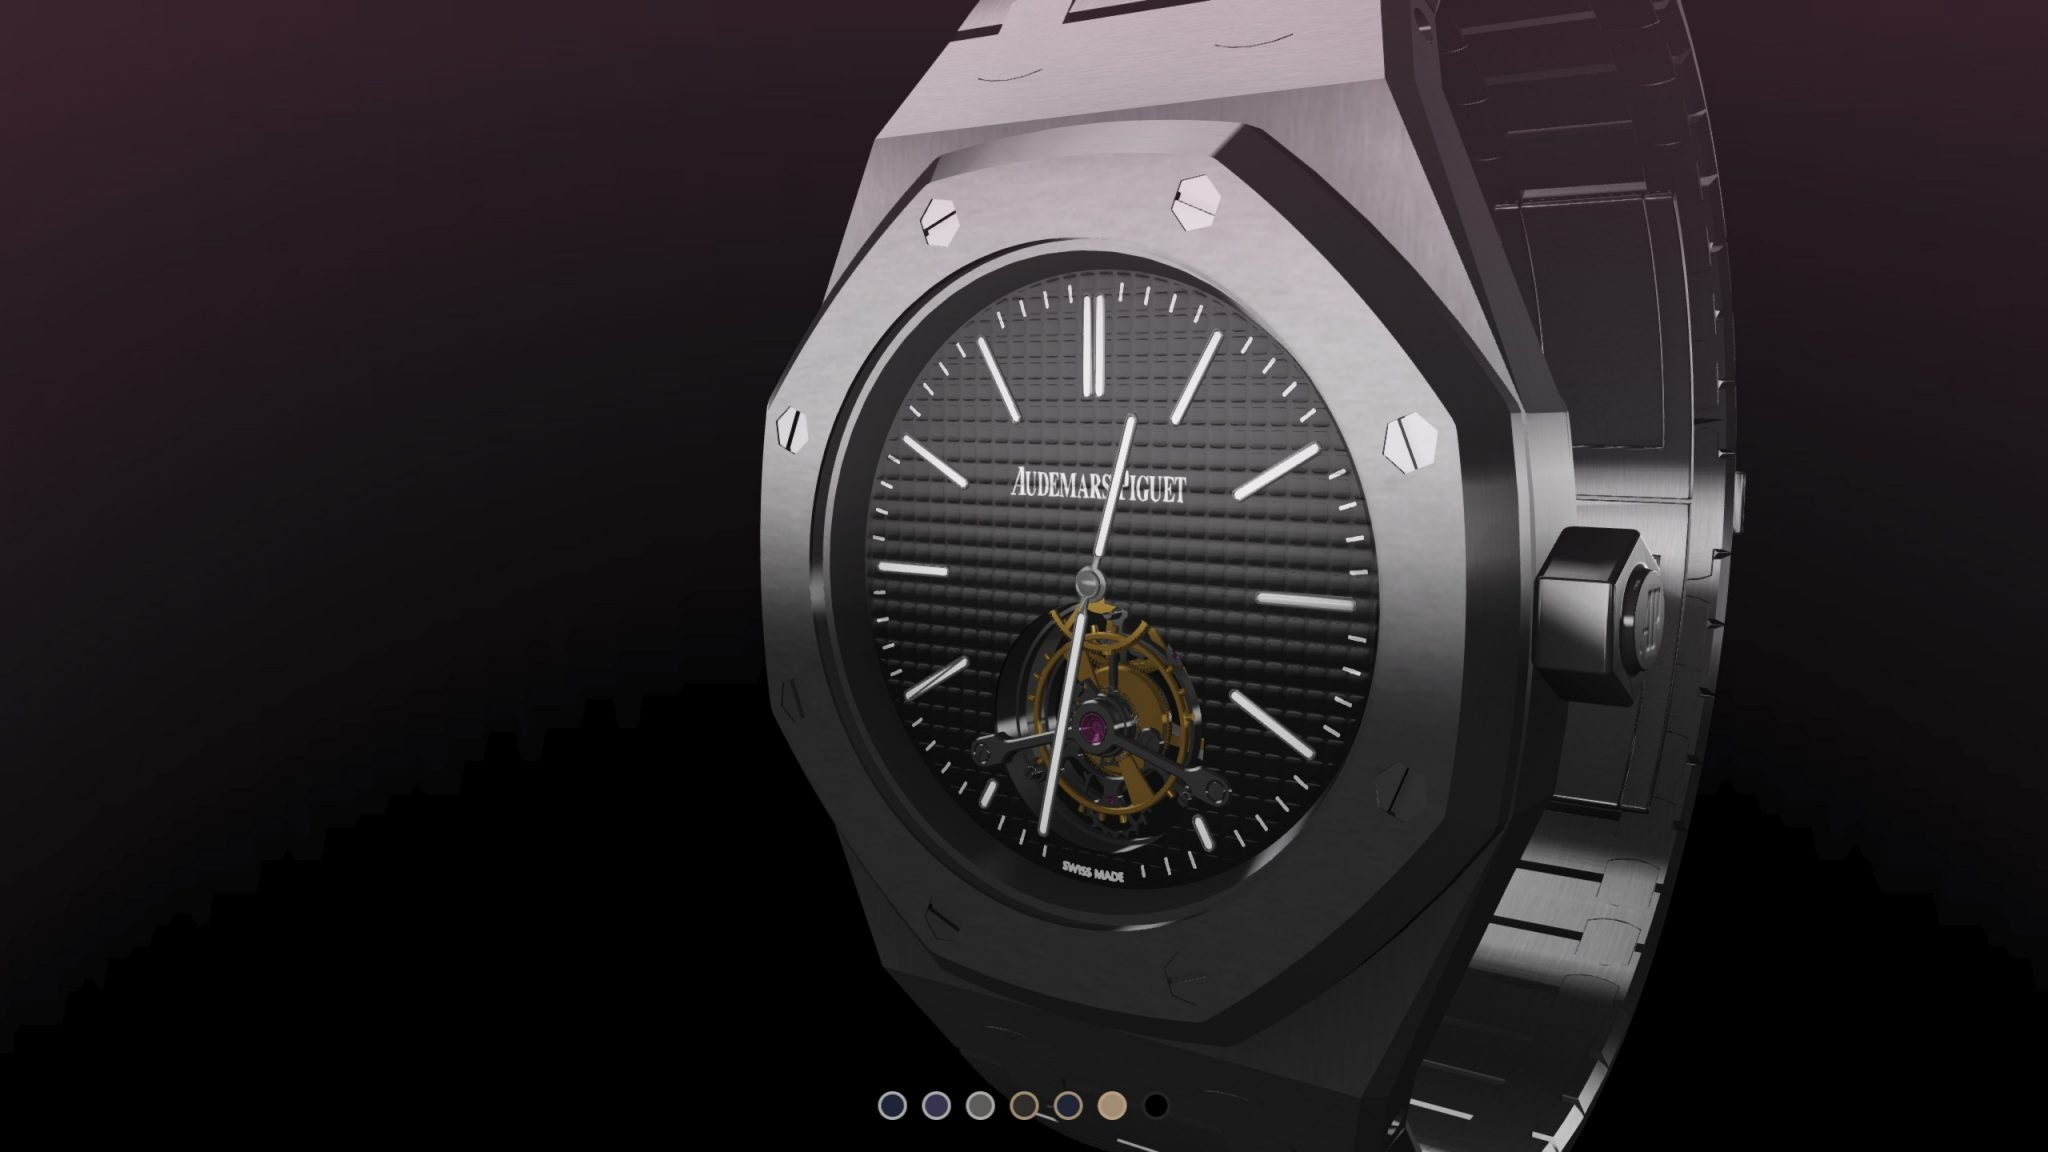 3d-configurator-online-audemars-horloge-watch-demo2